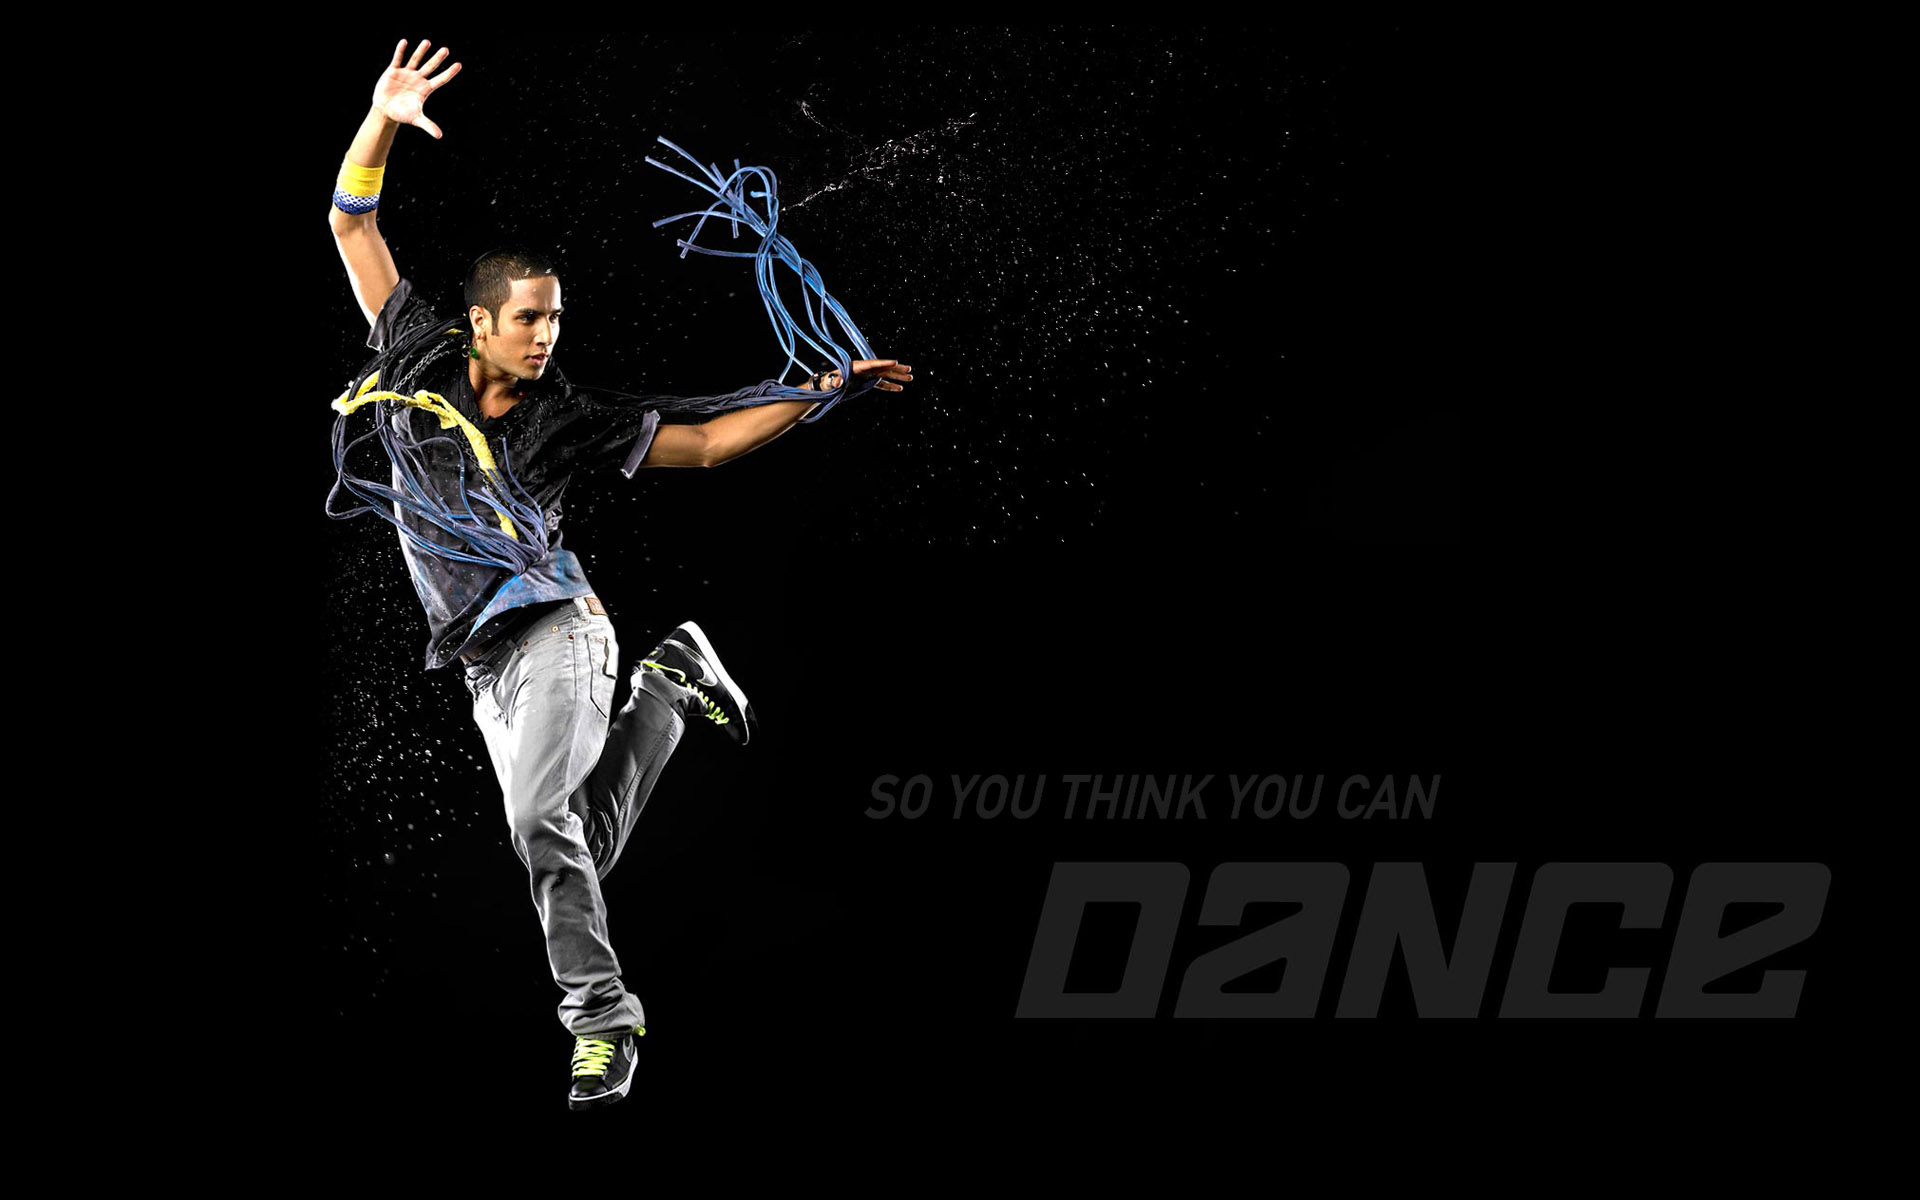 So You Think You Can Dance Man Tv Dance Dancer Dancing Male Wallpaper 1920x1200